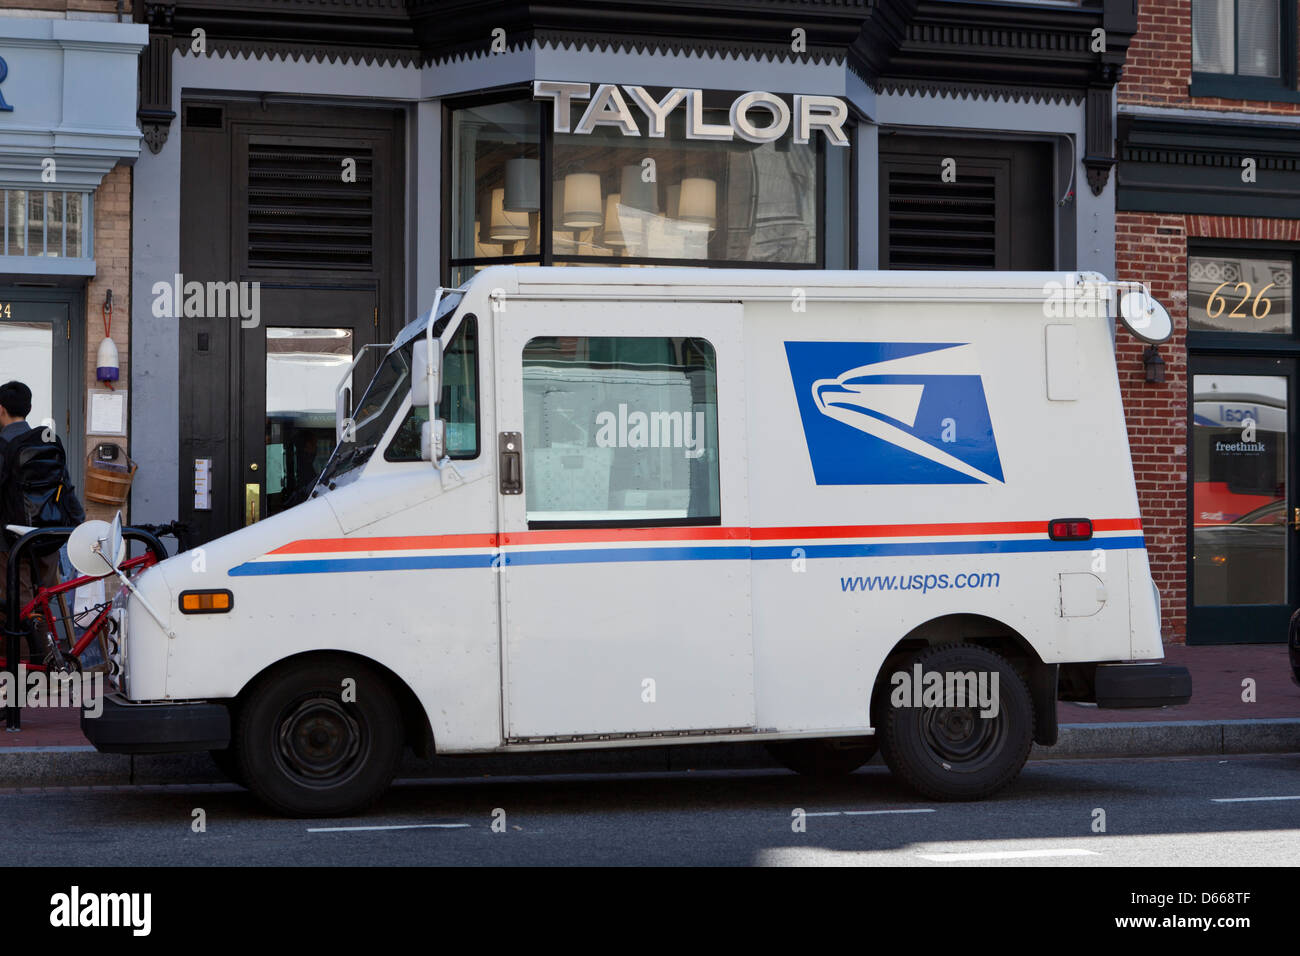 US Mail delivery truck - USA - Stock Image